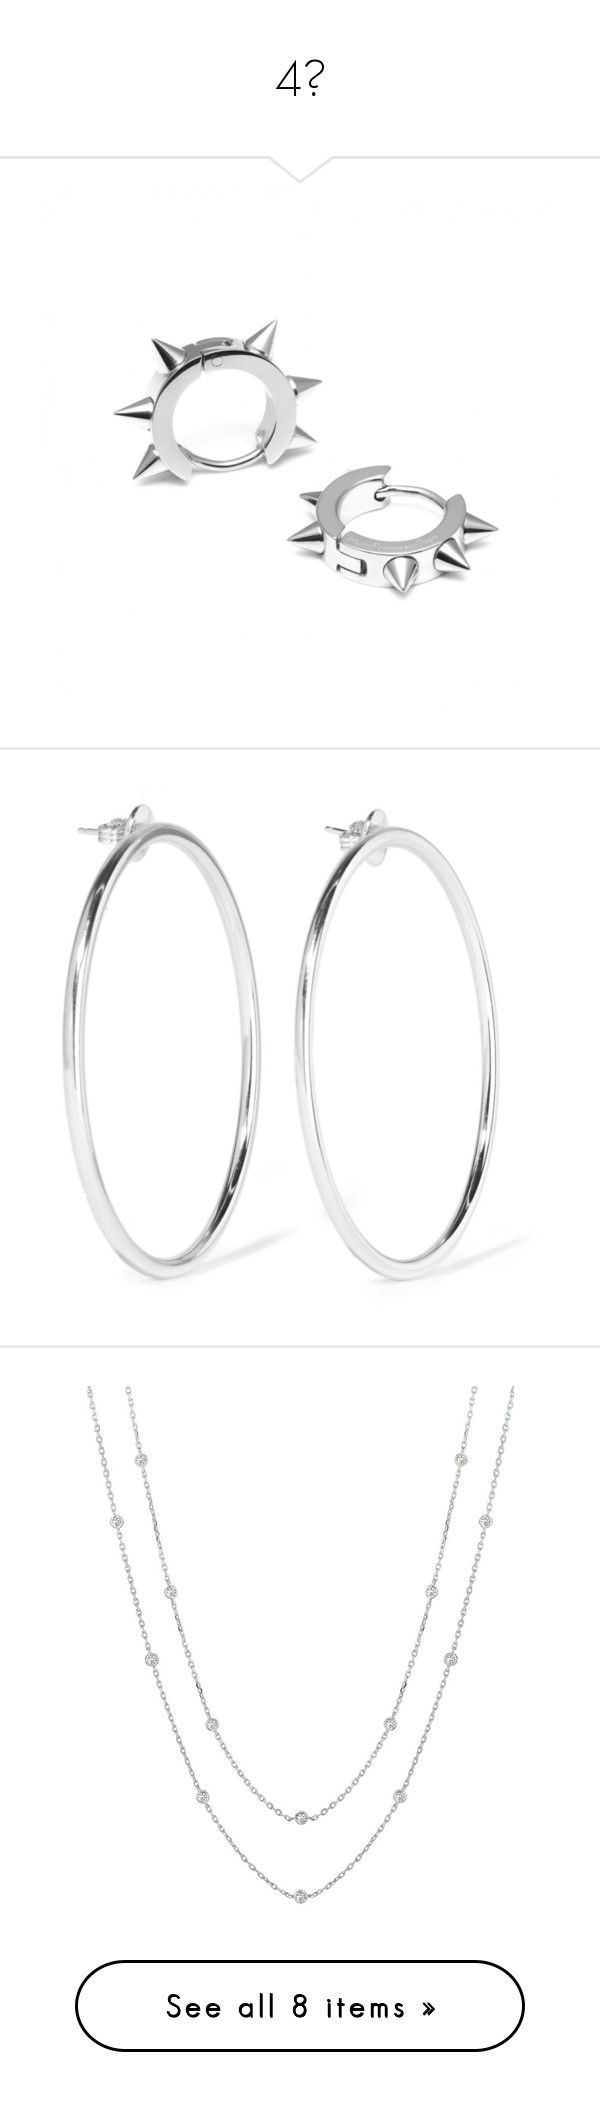 """""""4💍"""" by baaby-dooll ❤ liked on Polyvore featuring jewelry, earrings, nickel free jewelry, nickel free earrings, hoop earrings, spikes jewelry, nickel free hoop earrings, joias, silver and silver plated earrings"""